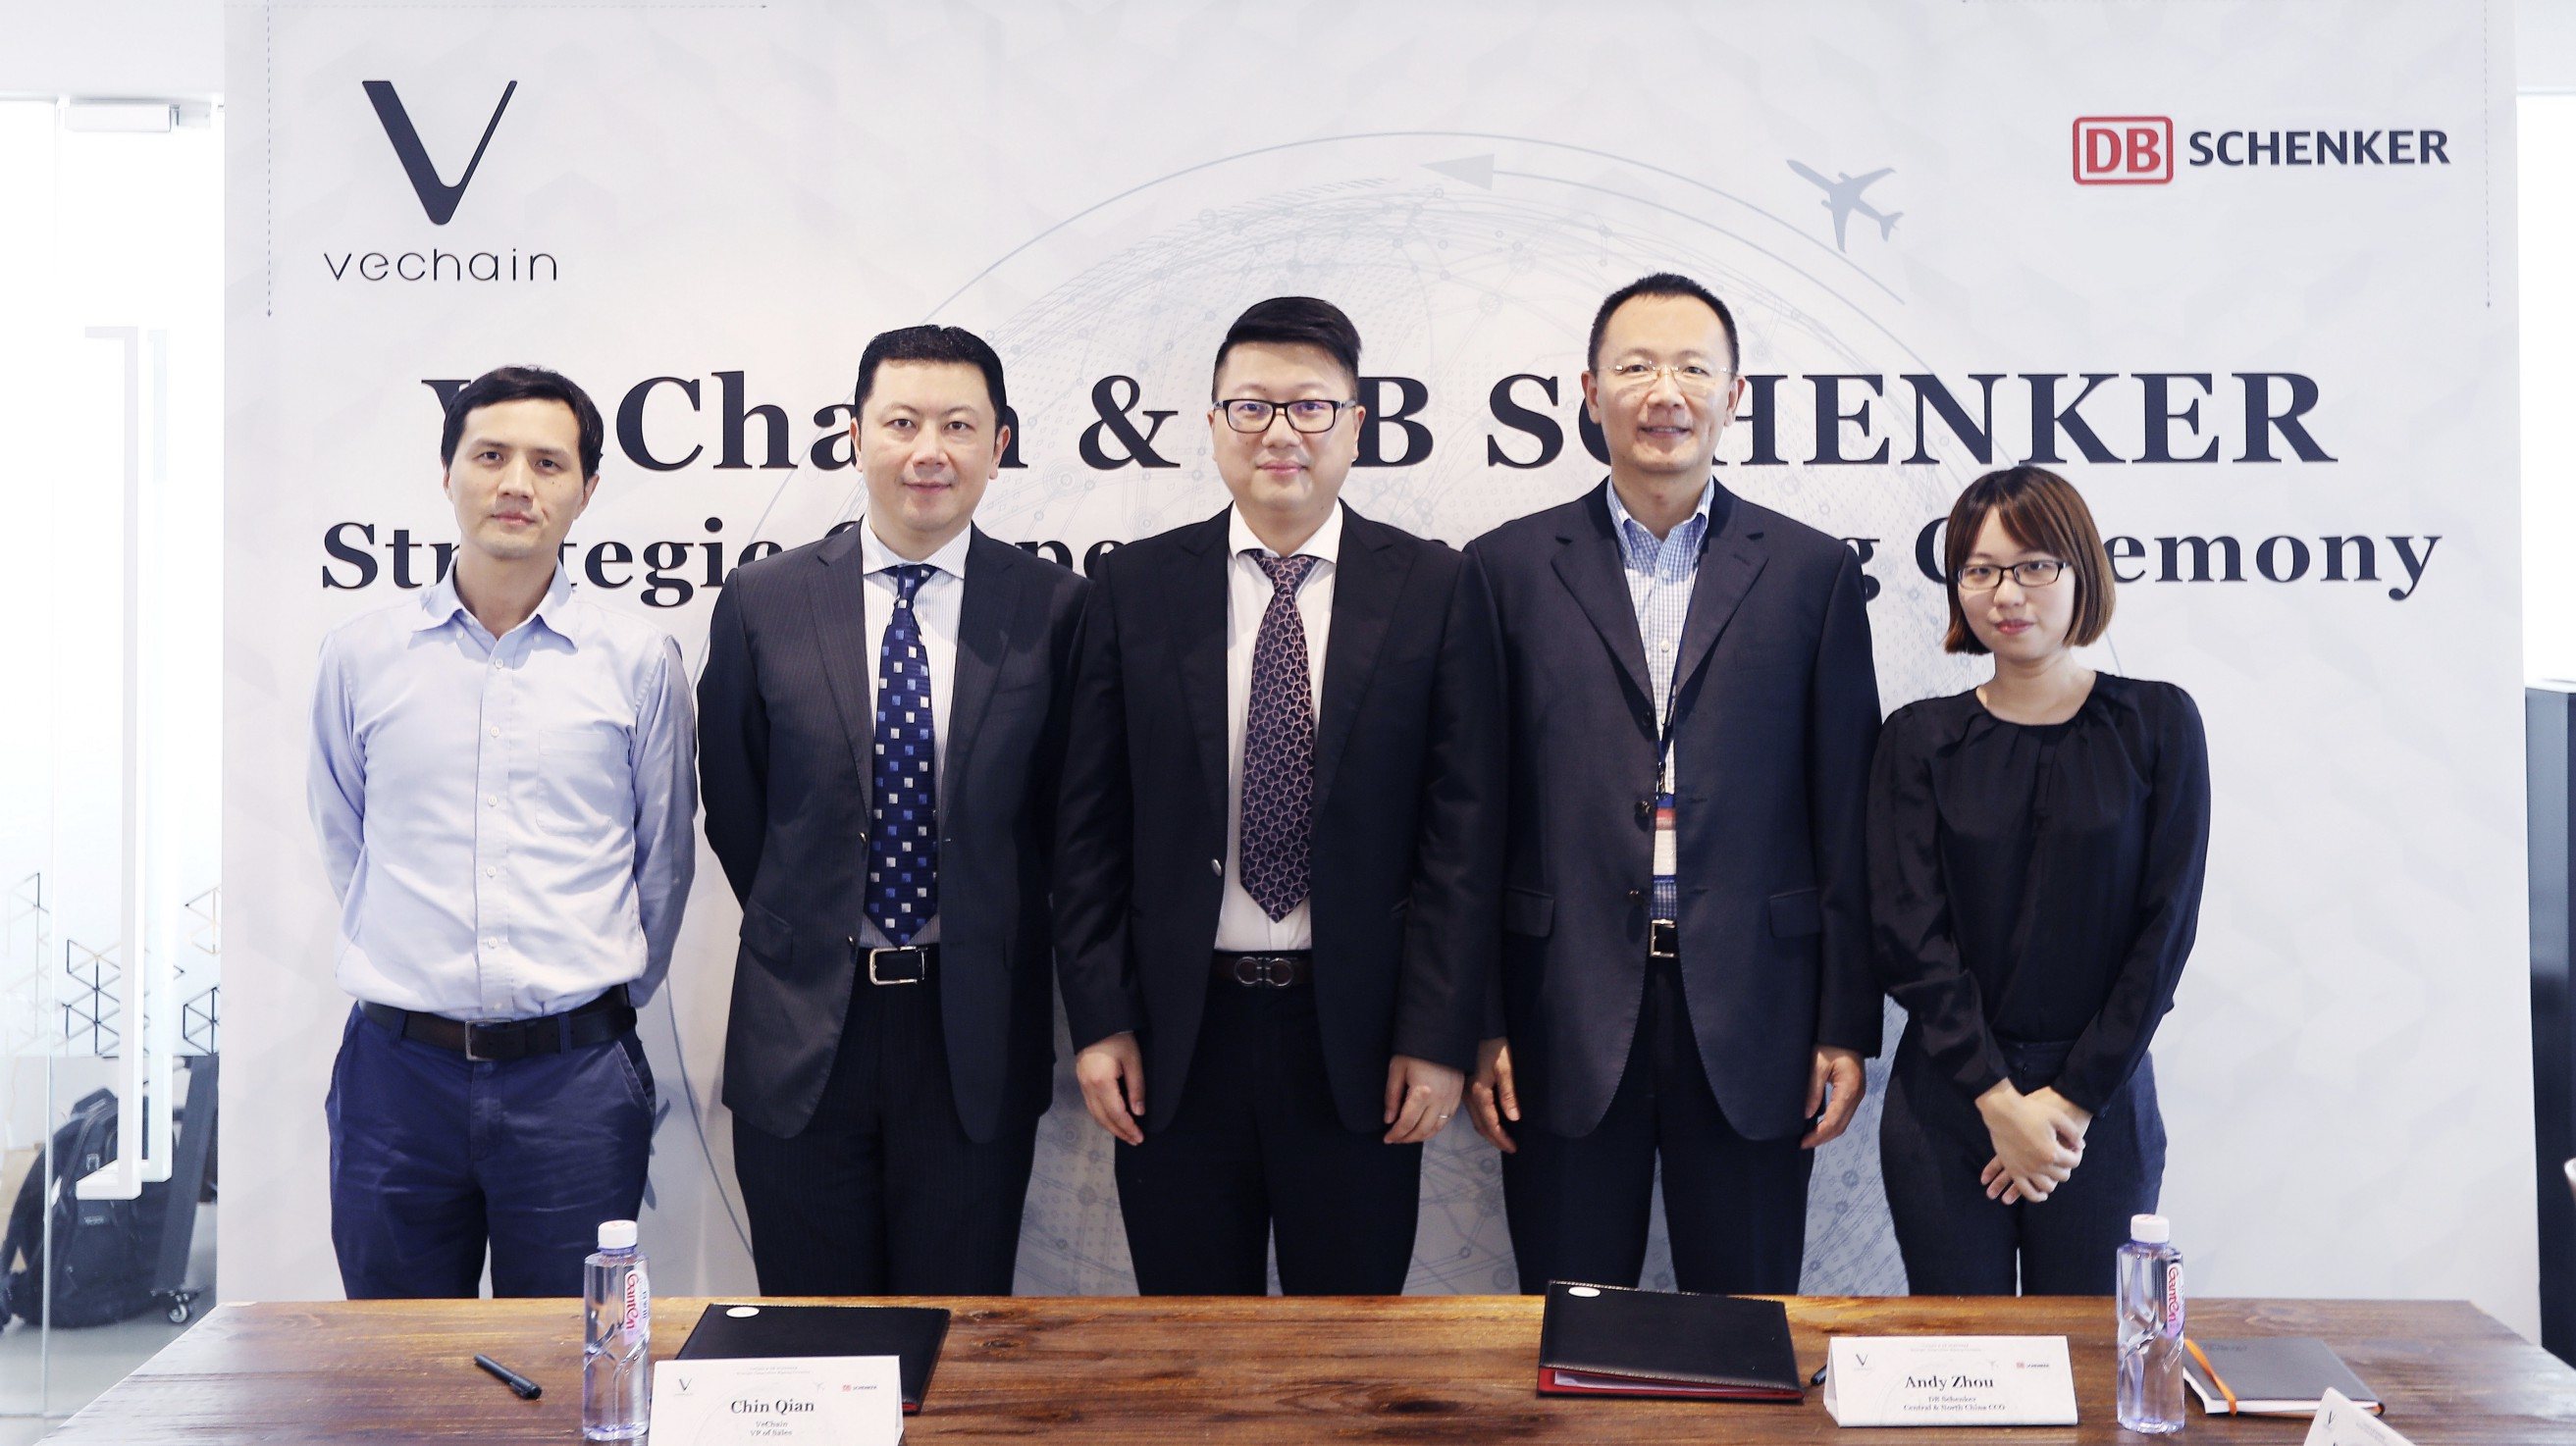 VeChain and DB Schenker pioneer in the use of blockchain for the